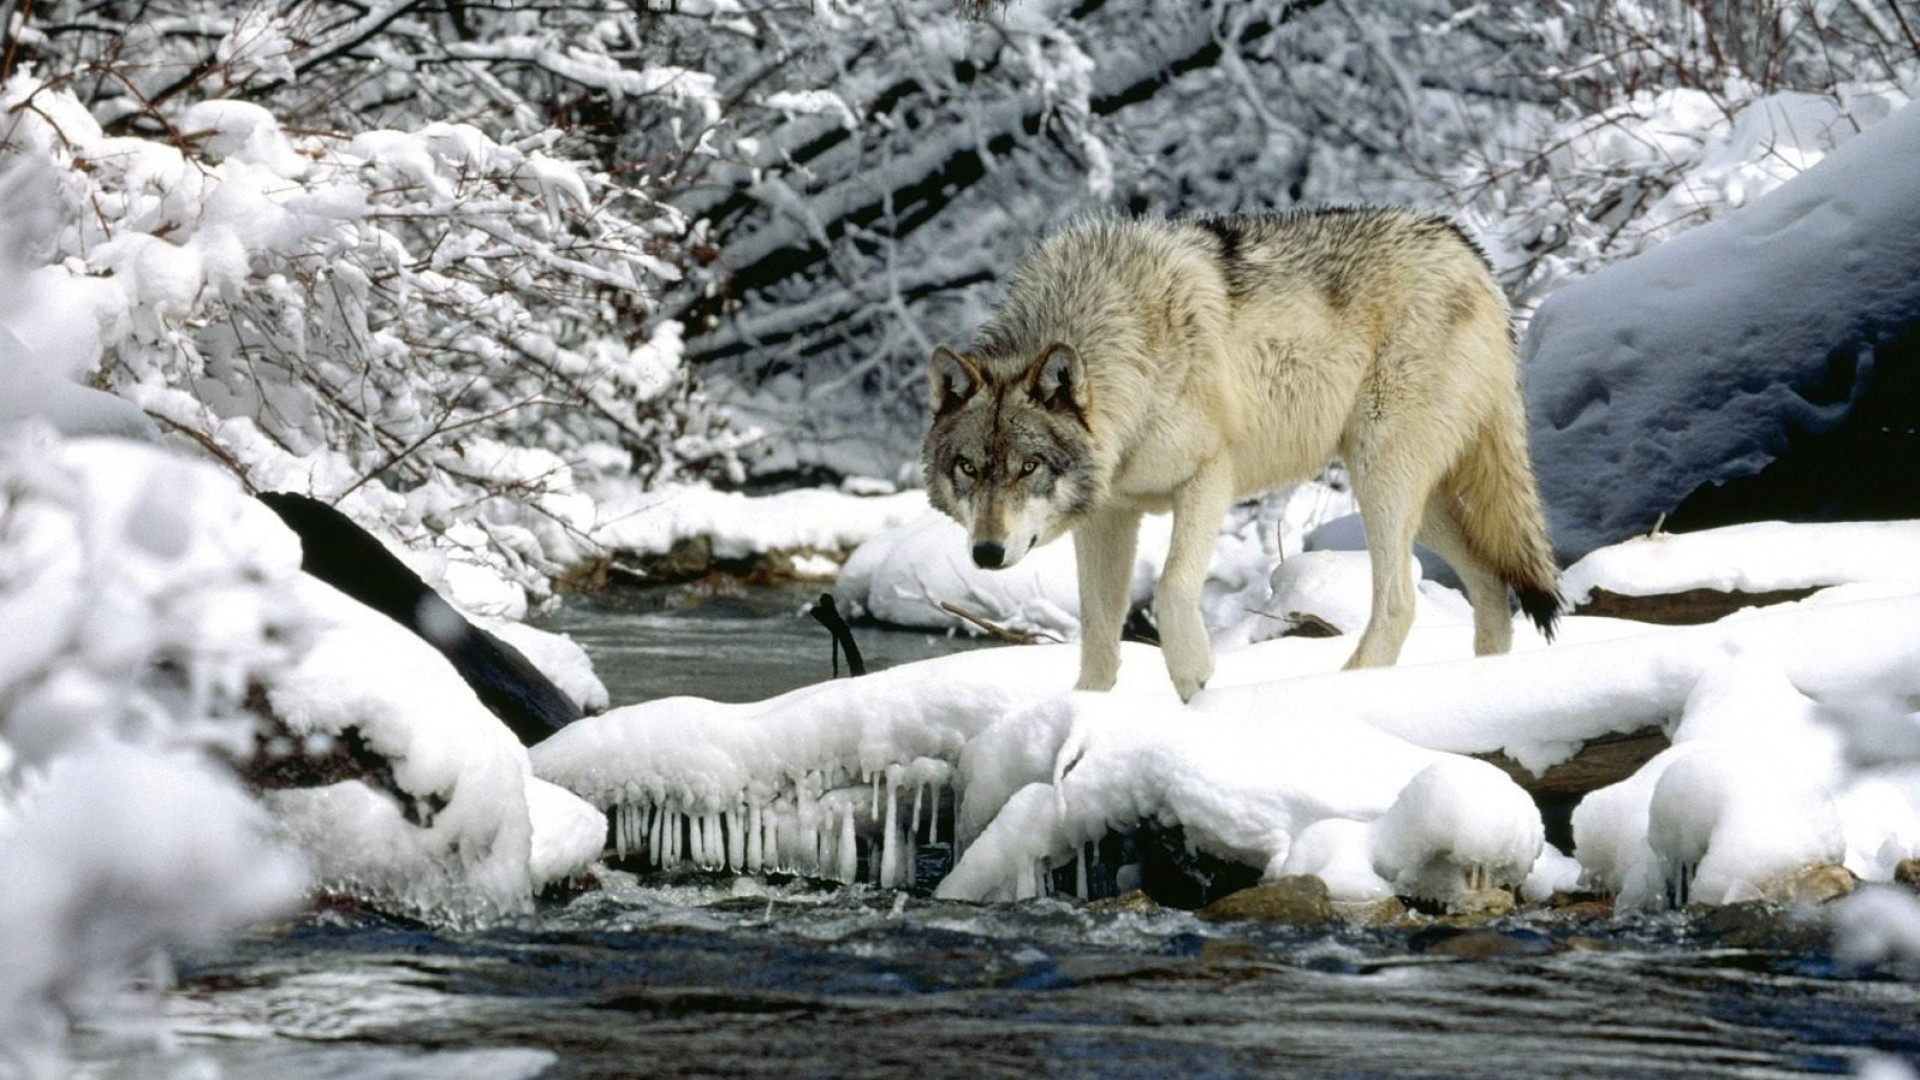 … Background Full HD 1080p. Wallpaper water, river, snow,  spring, wolf